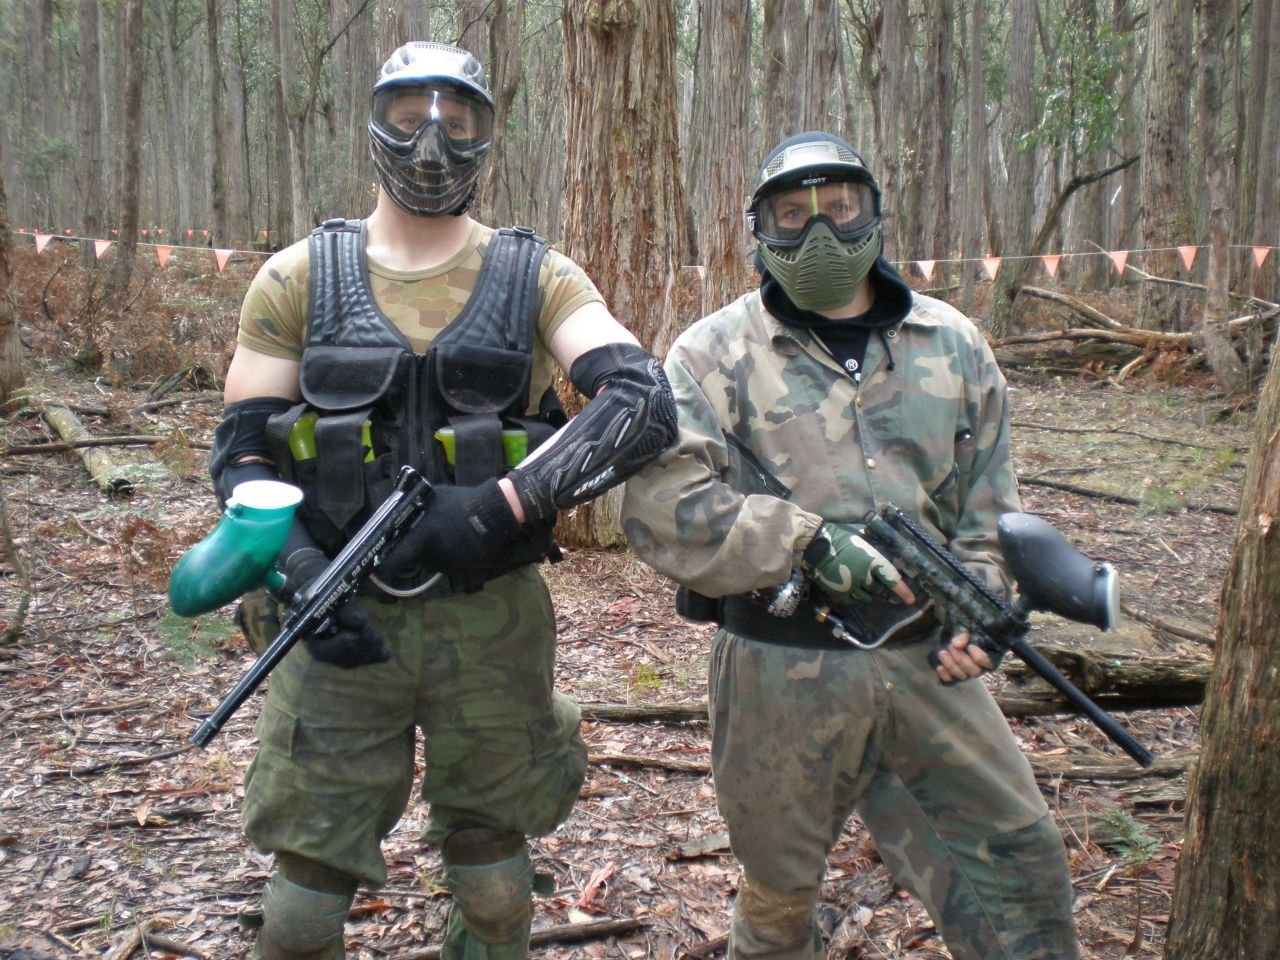 Cool Paintball Pictures Paintball moments - galleryCool Paintball Pictures